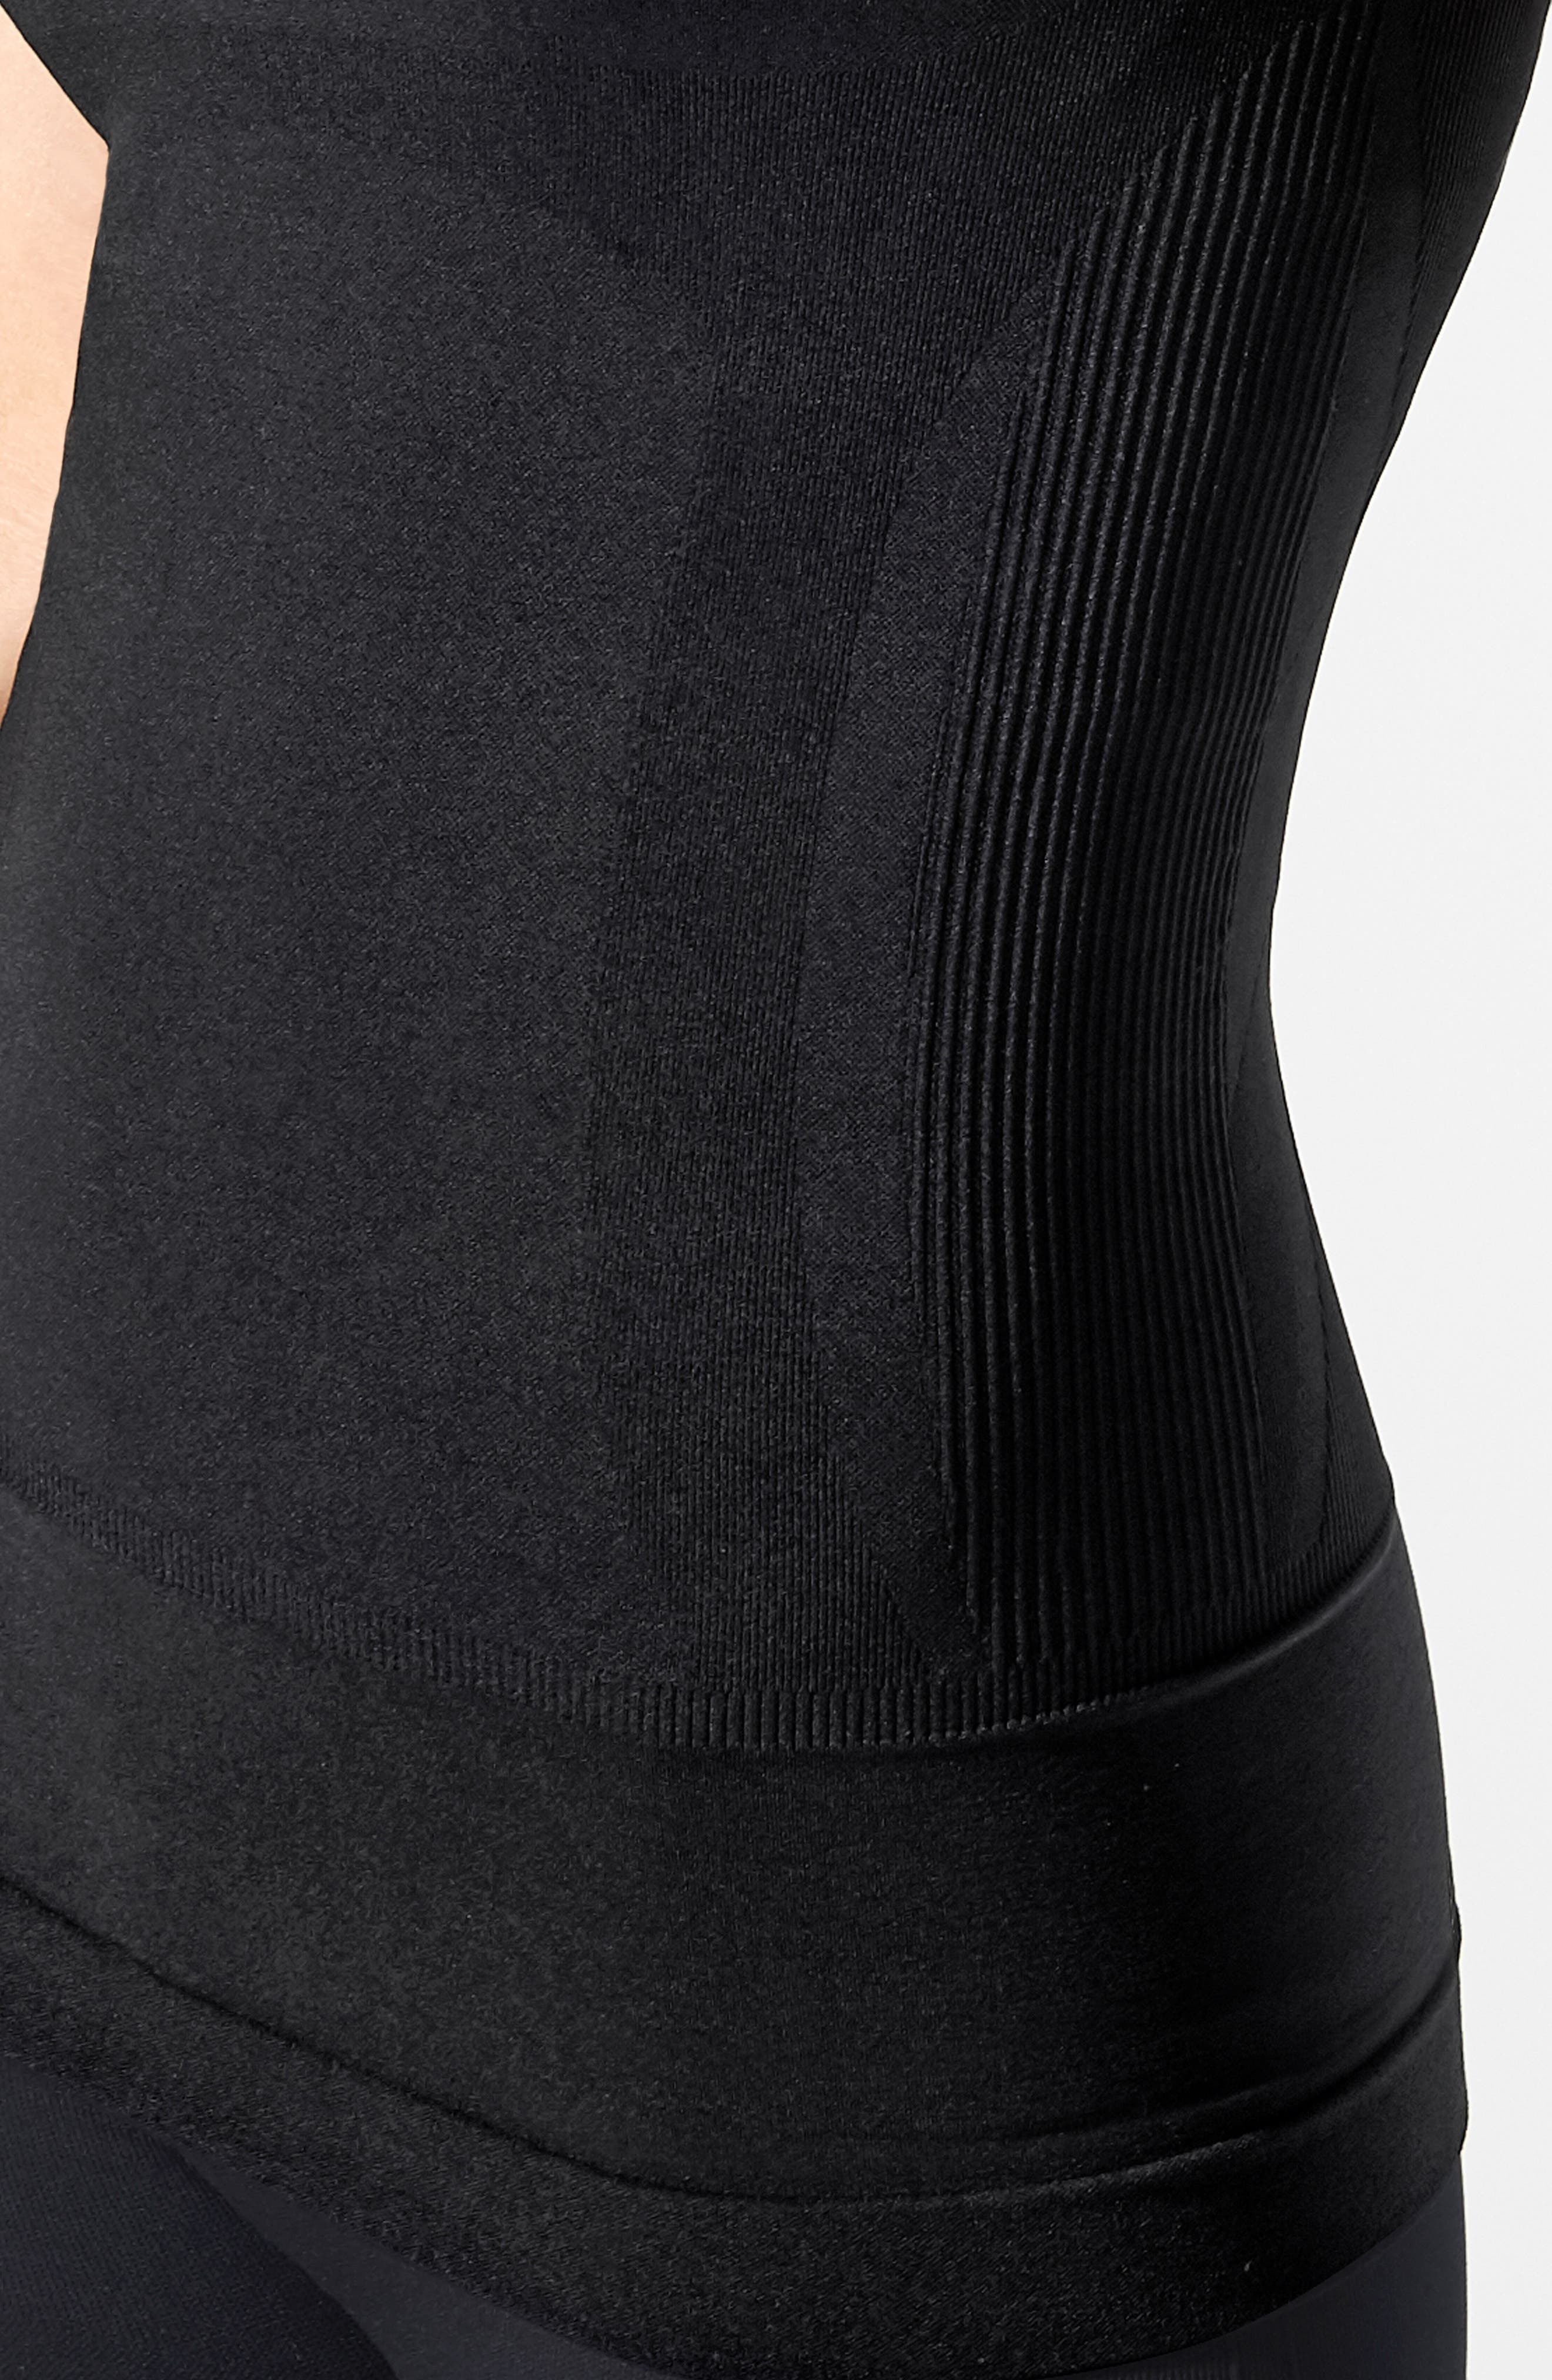 Everyday<sup>™</sup> Lift-Up Access Postpartum + Nursing Support Tank,                             Alternate thumbnail 6, color,                             DEEPEST BLACK